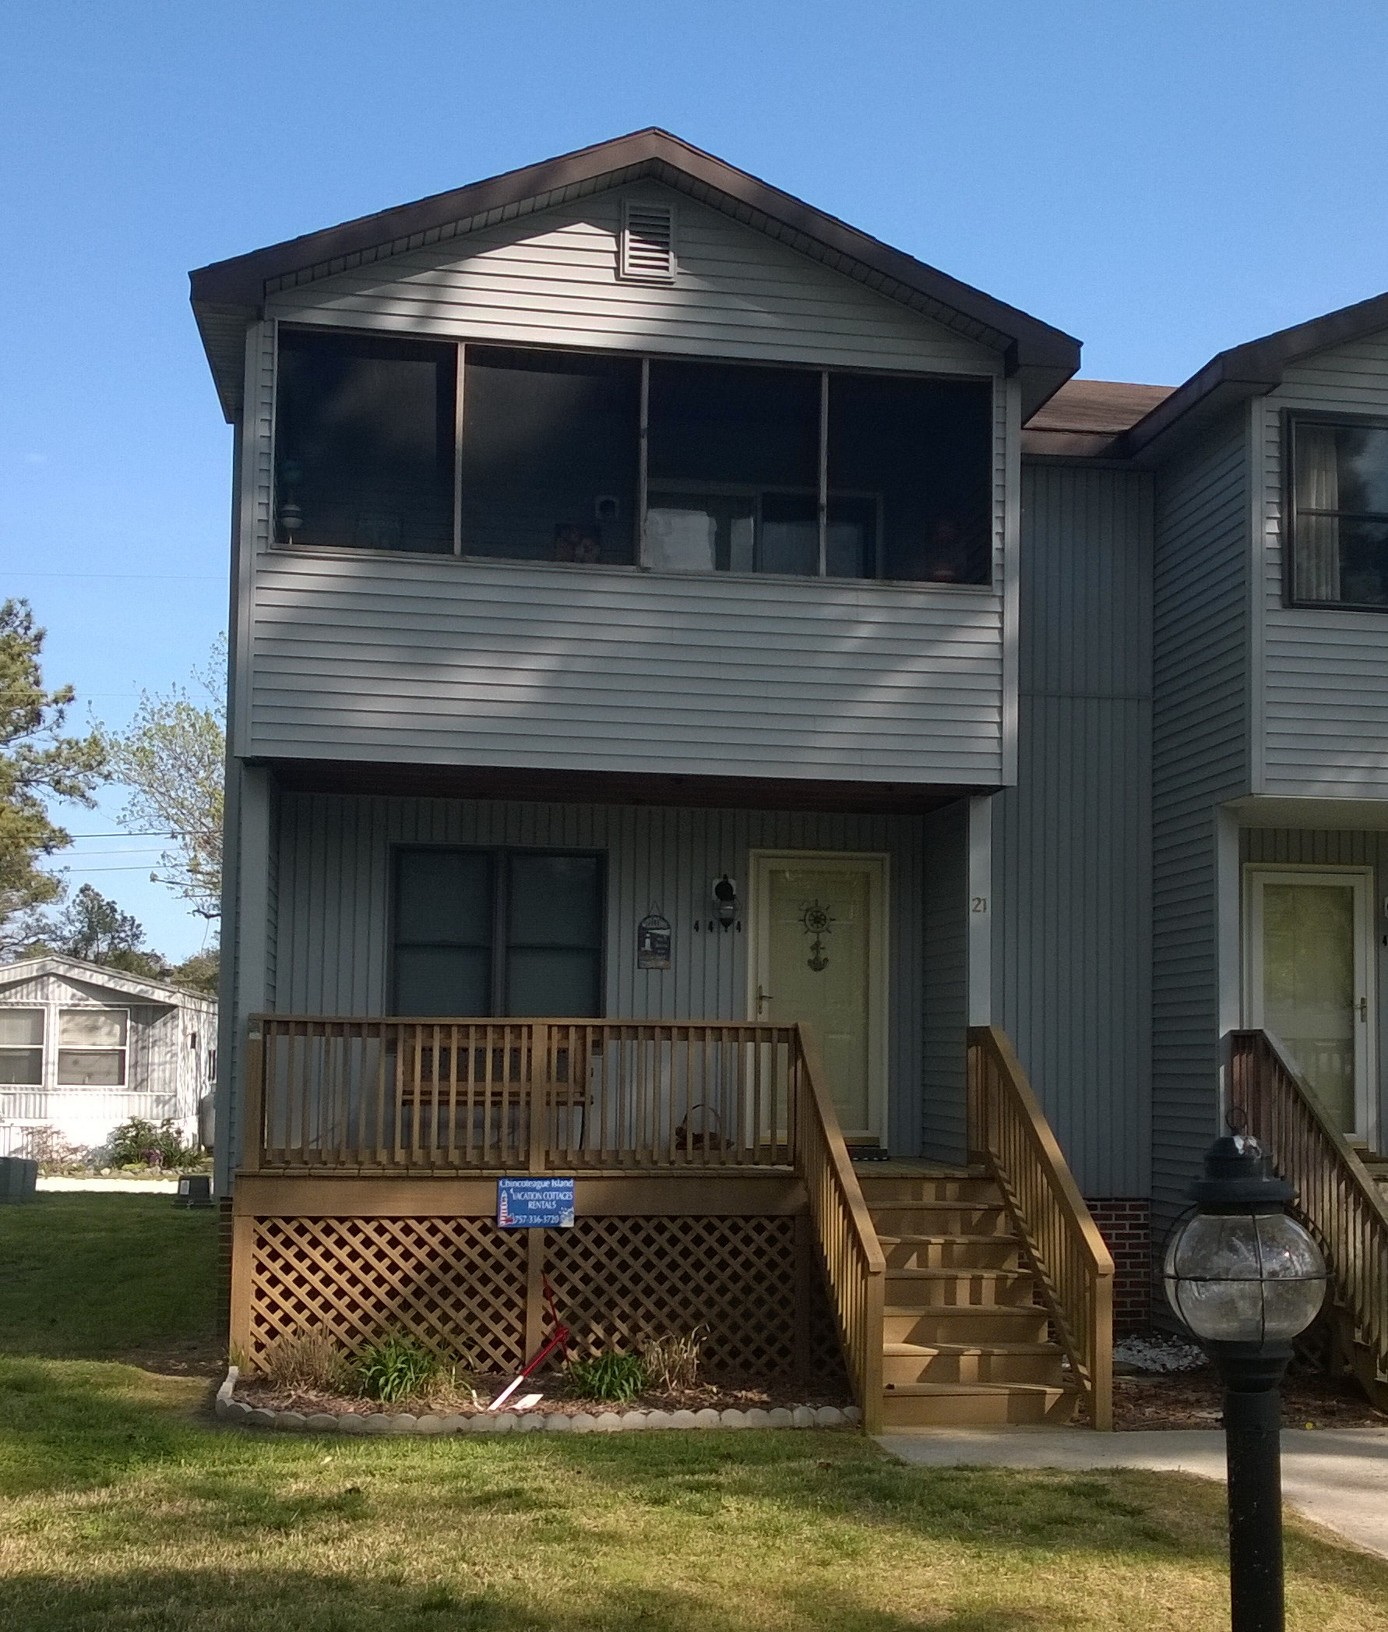 Waterfront Townhome Boasts Cool Urban Style: Chincoteague Vacation Rentals